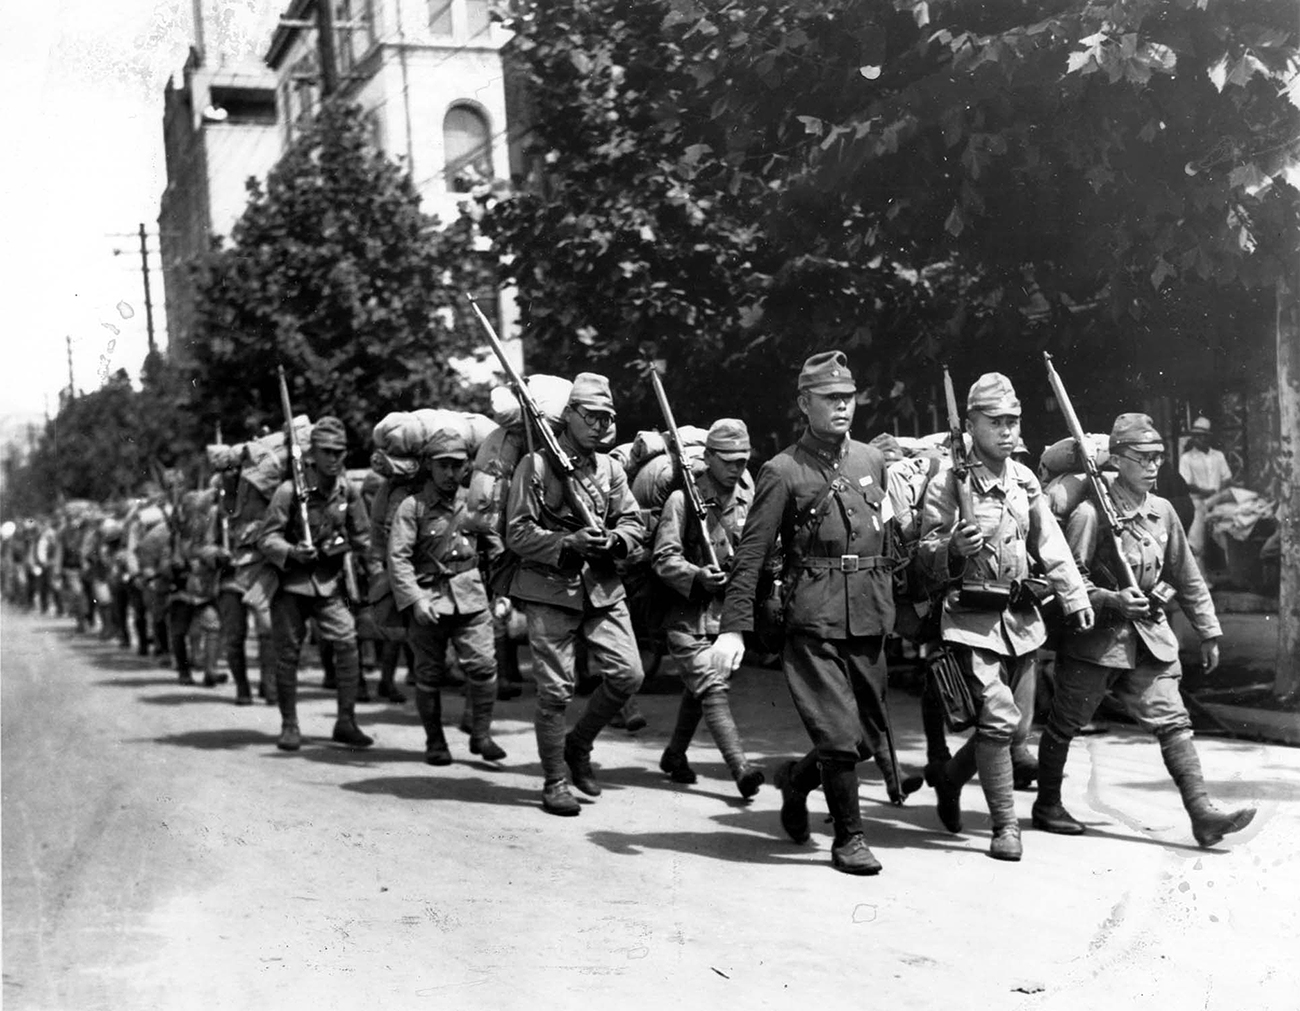 Japanese soldiers marching in Seoul in the 1920s. Source: AFP